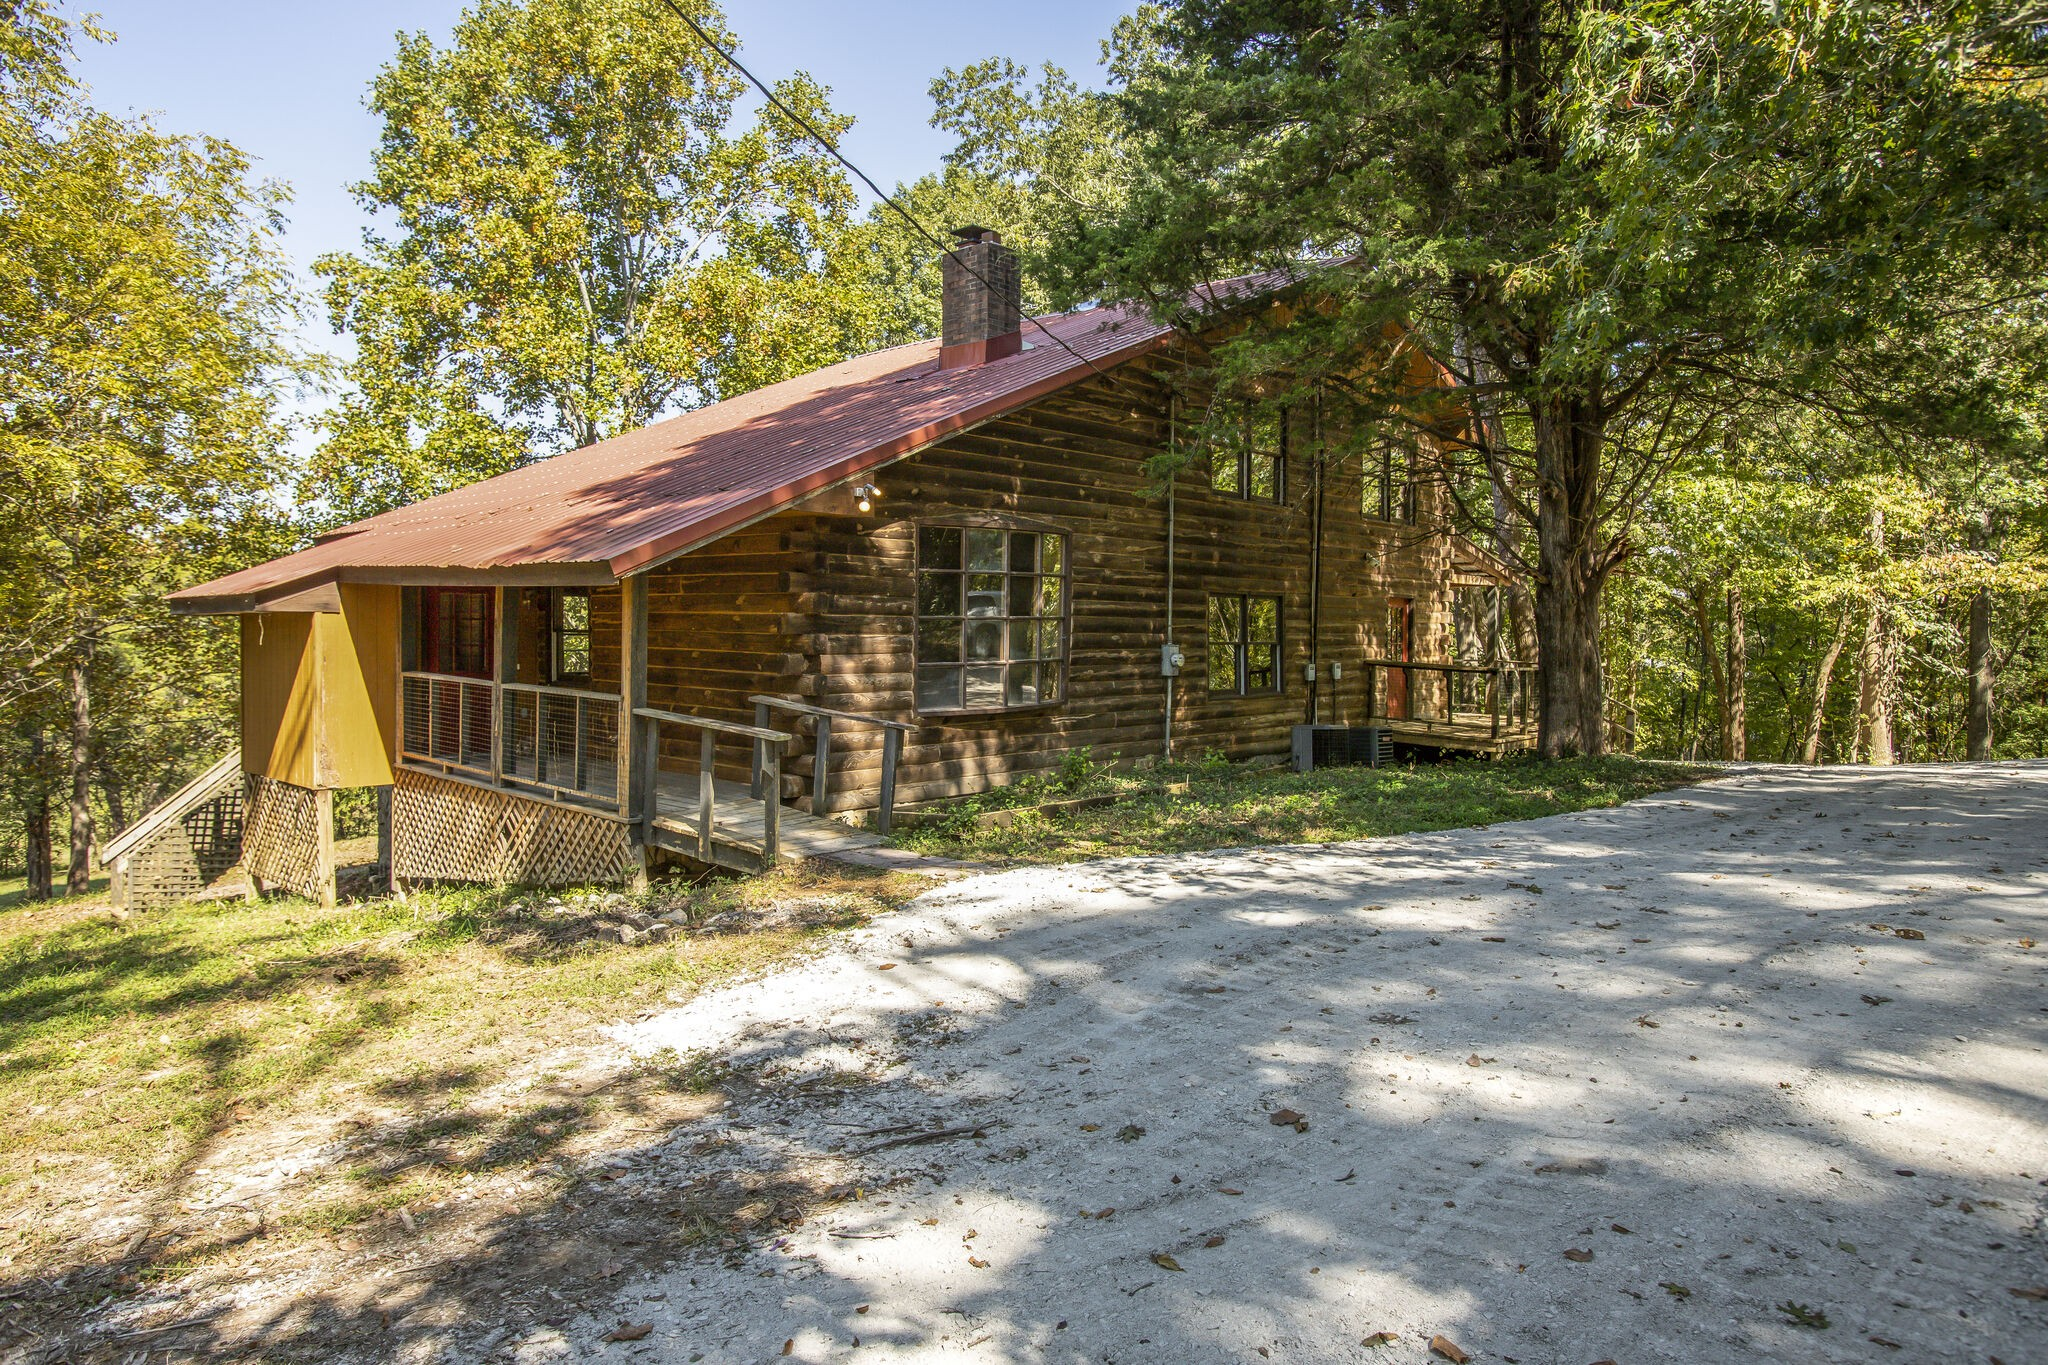 Brentwood Schools for this Log Home on 2 ACRE, treed, peaceful lot.House is teardown or major reno.Private & serene, only minutes to Cool Springs, downtown Nashville, BNA. Surrounded by million dollar homes and ready for your updates. No HOA. Breathtaking views from wraparound deck. App. 1,500 Sq. Ft. in  partially finished walkout basement. Gatlinburg in Brentwood! ADDITIONAL 5 ACRES AVAILABLE . MLS# 2190760